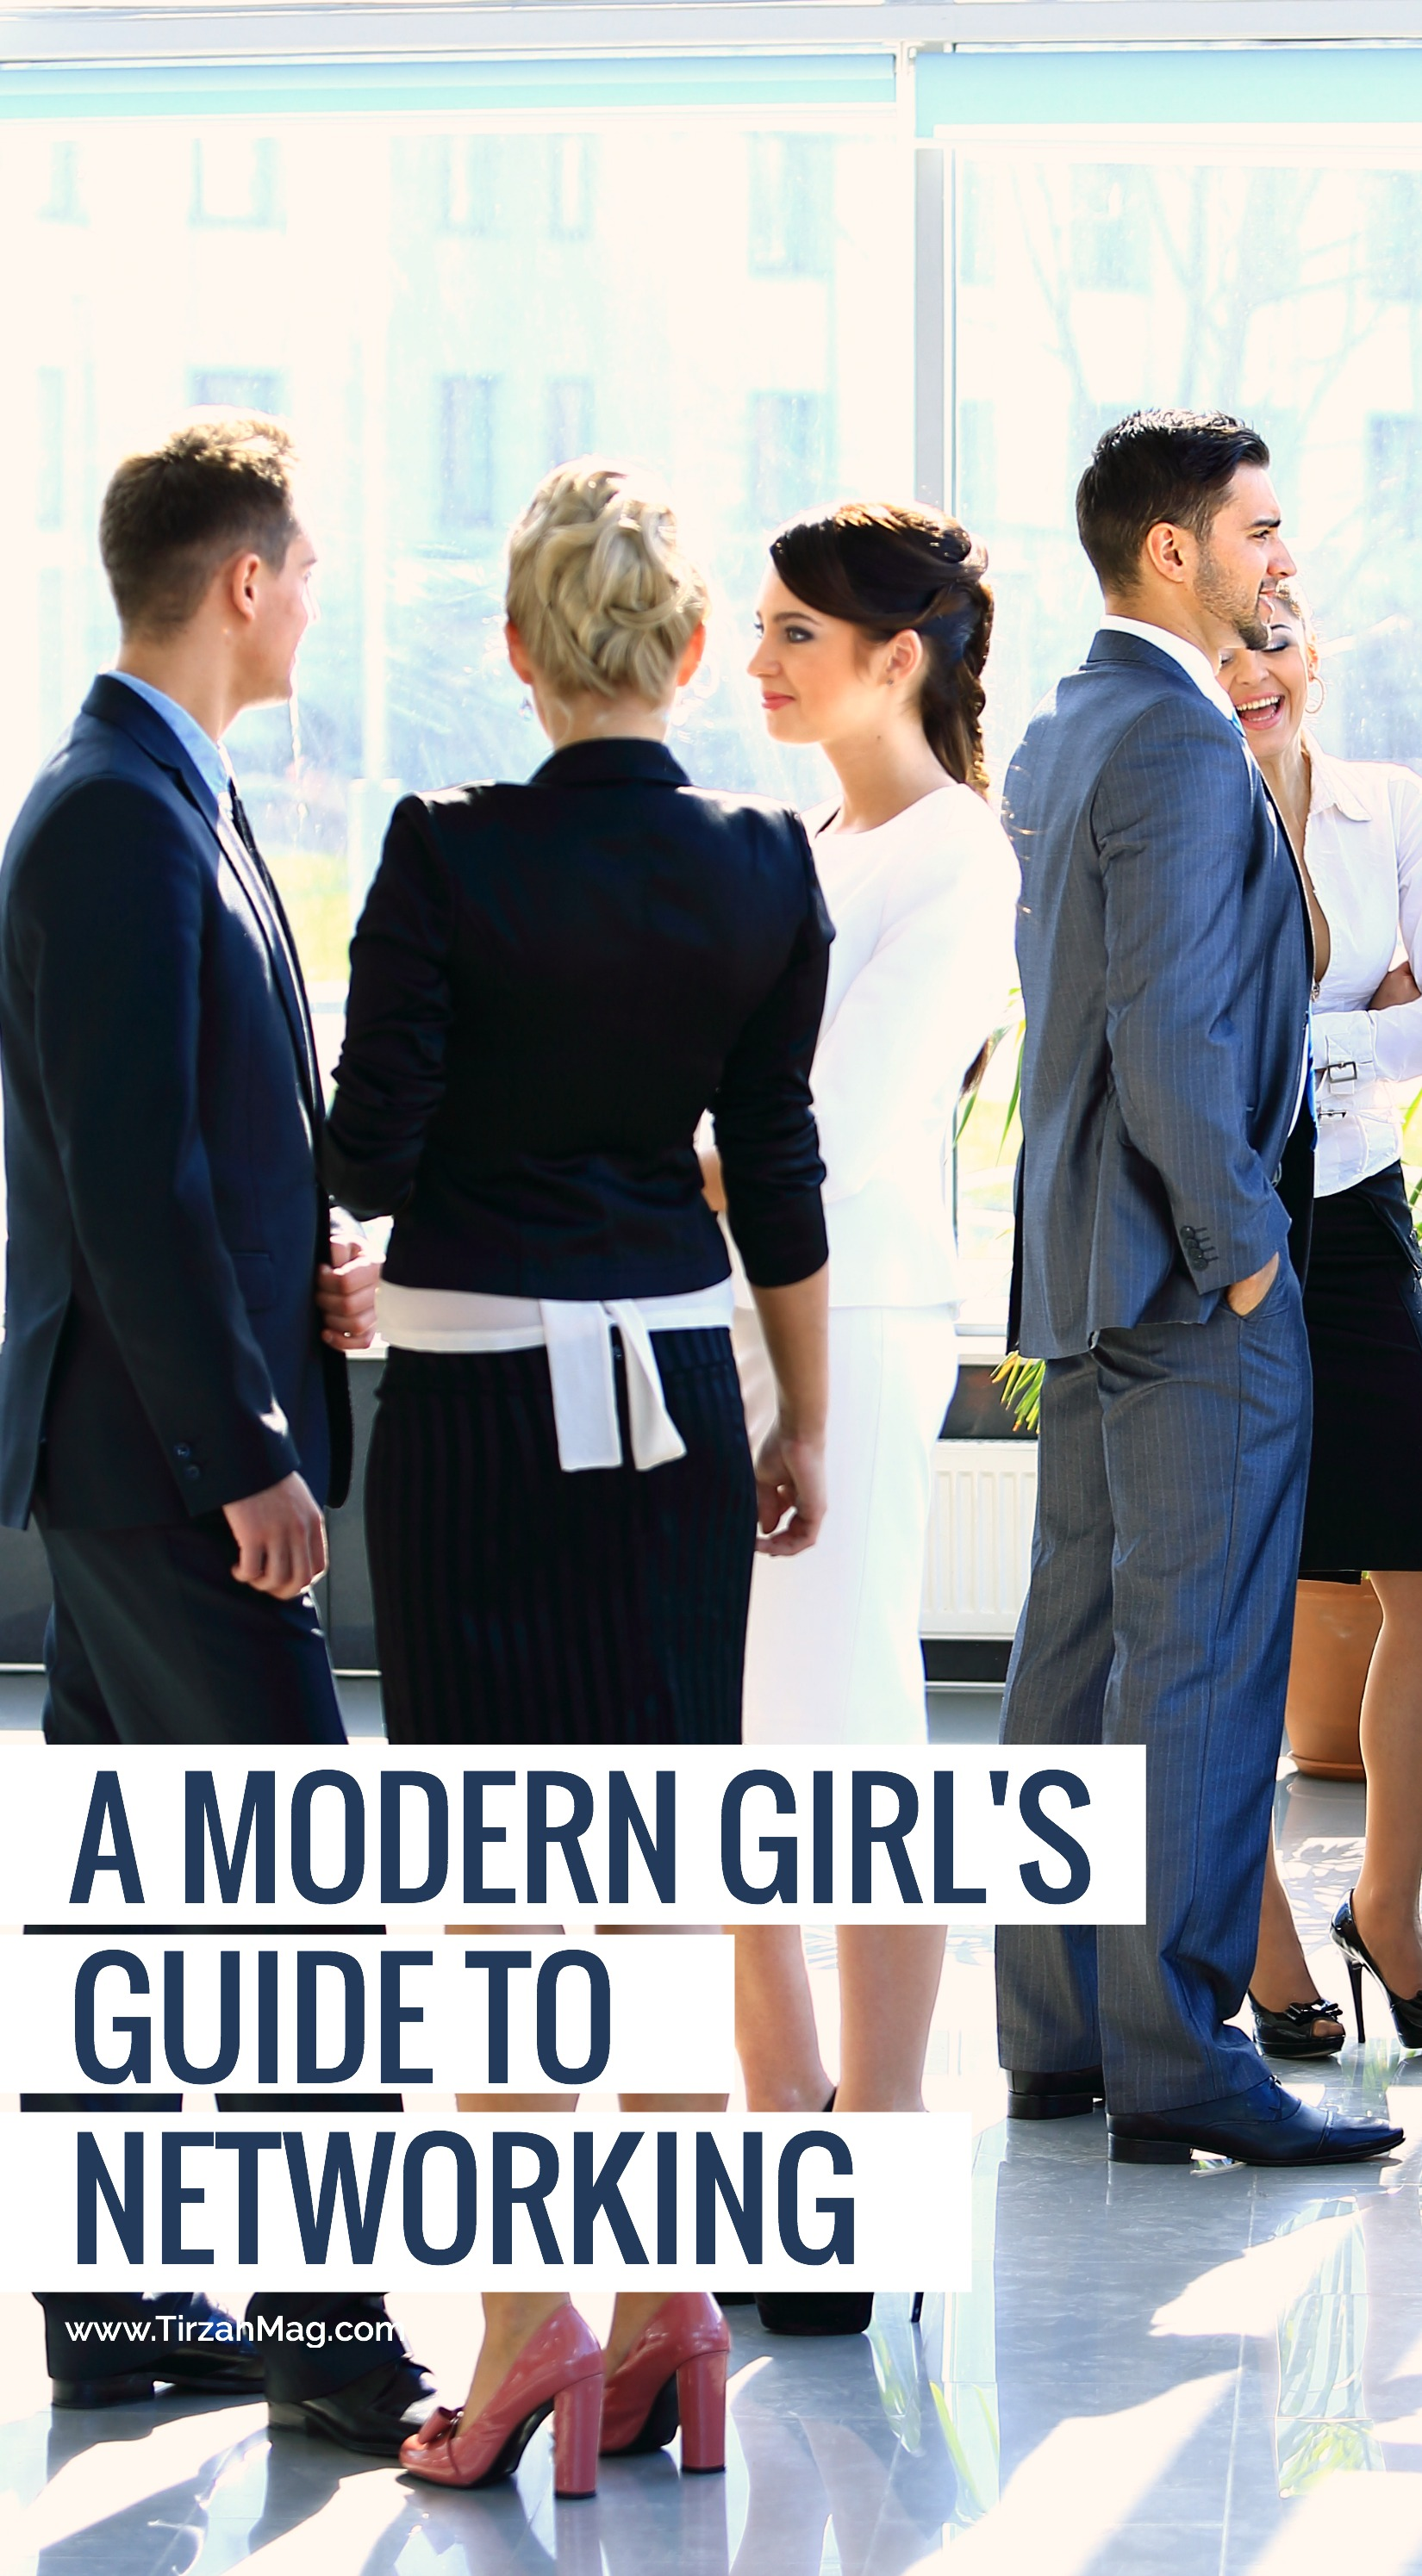 A modern girl's guide to networking and building relationships